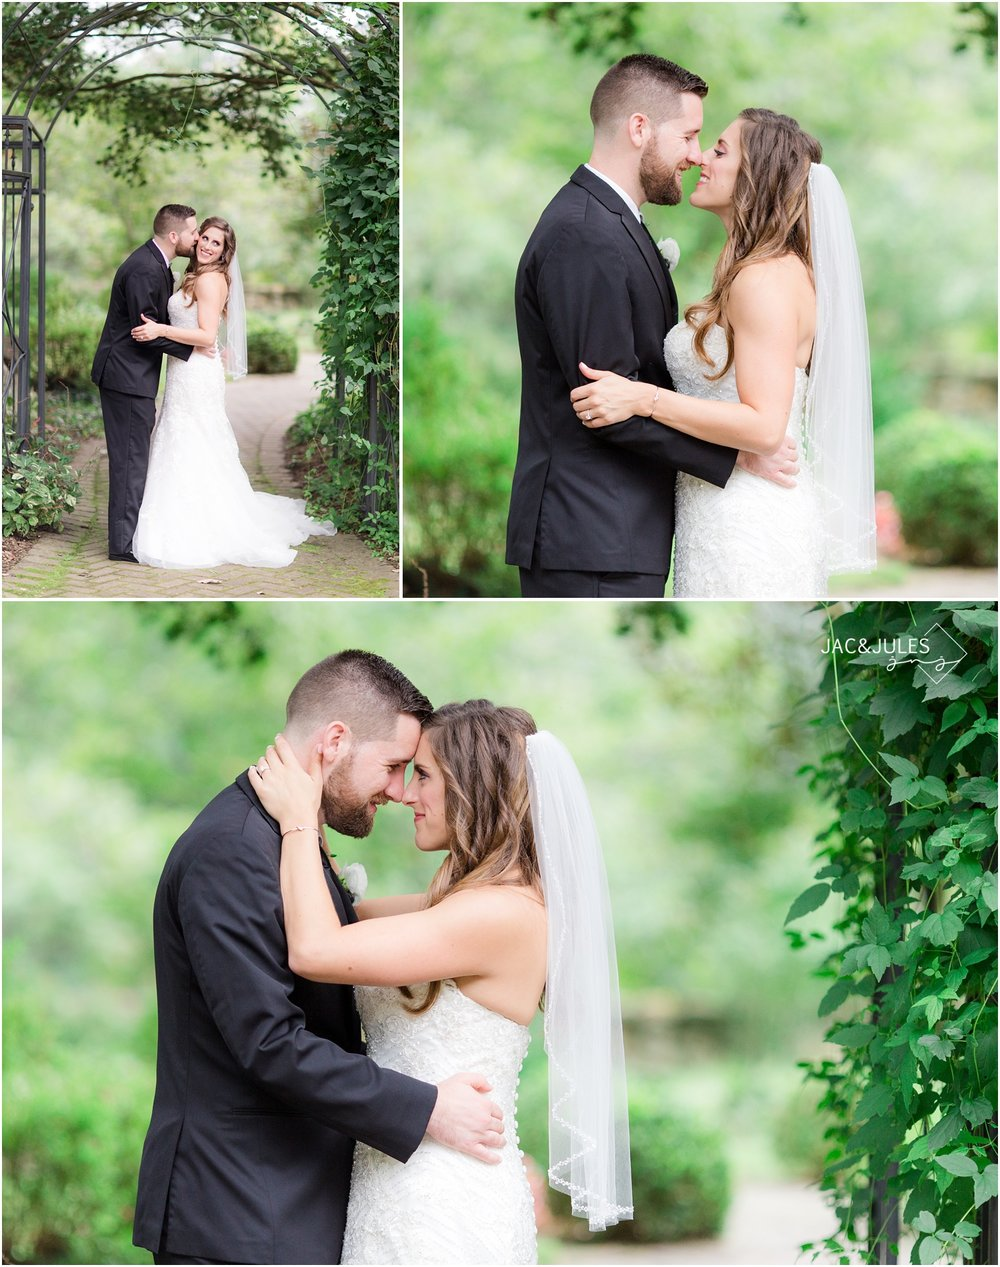 Romantic bride and groom photos at Cross Estate Gardens in Bernardsville, NJ.